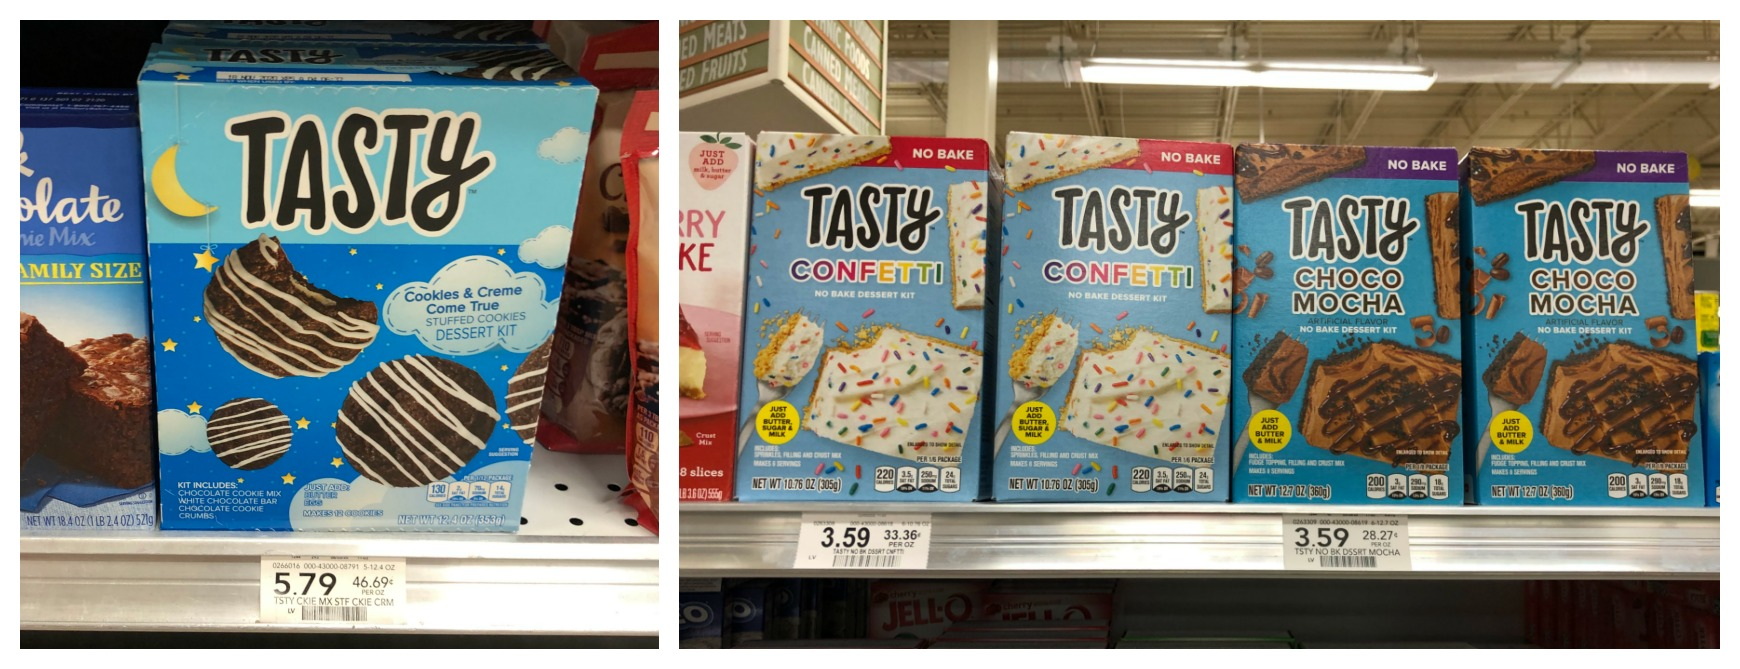 Save On The Delicious Tasty No Bake And Cookie Mix Kits At Publix on I Heart Publix 1